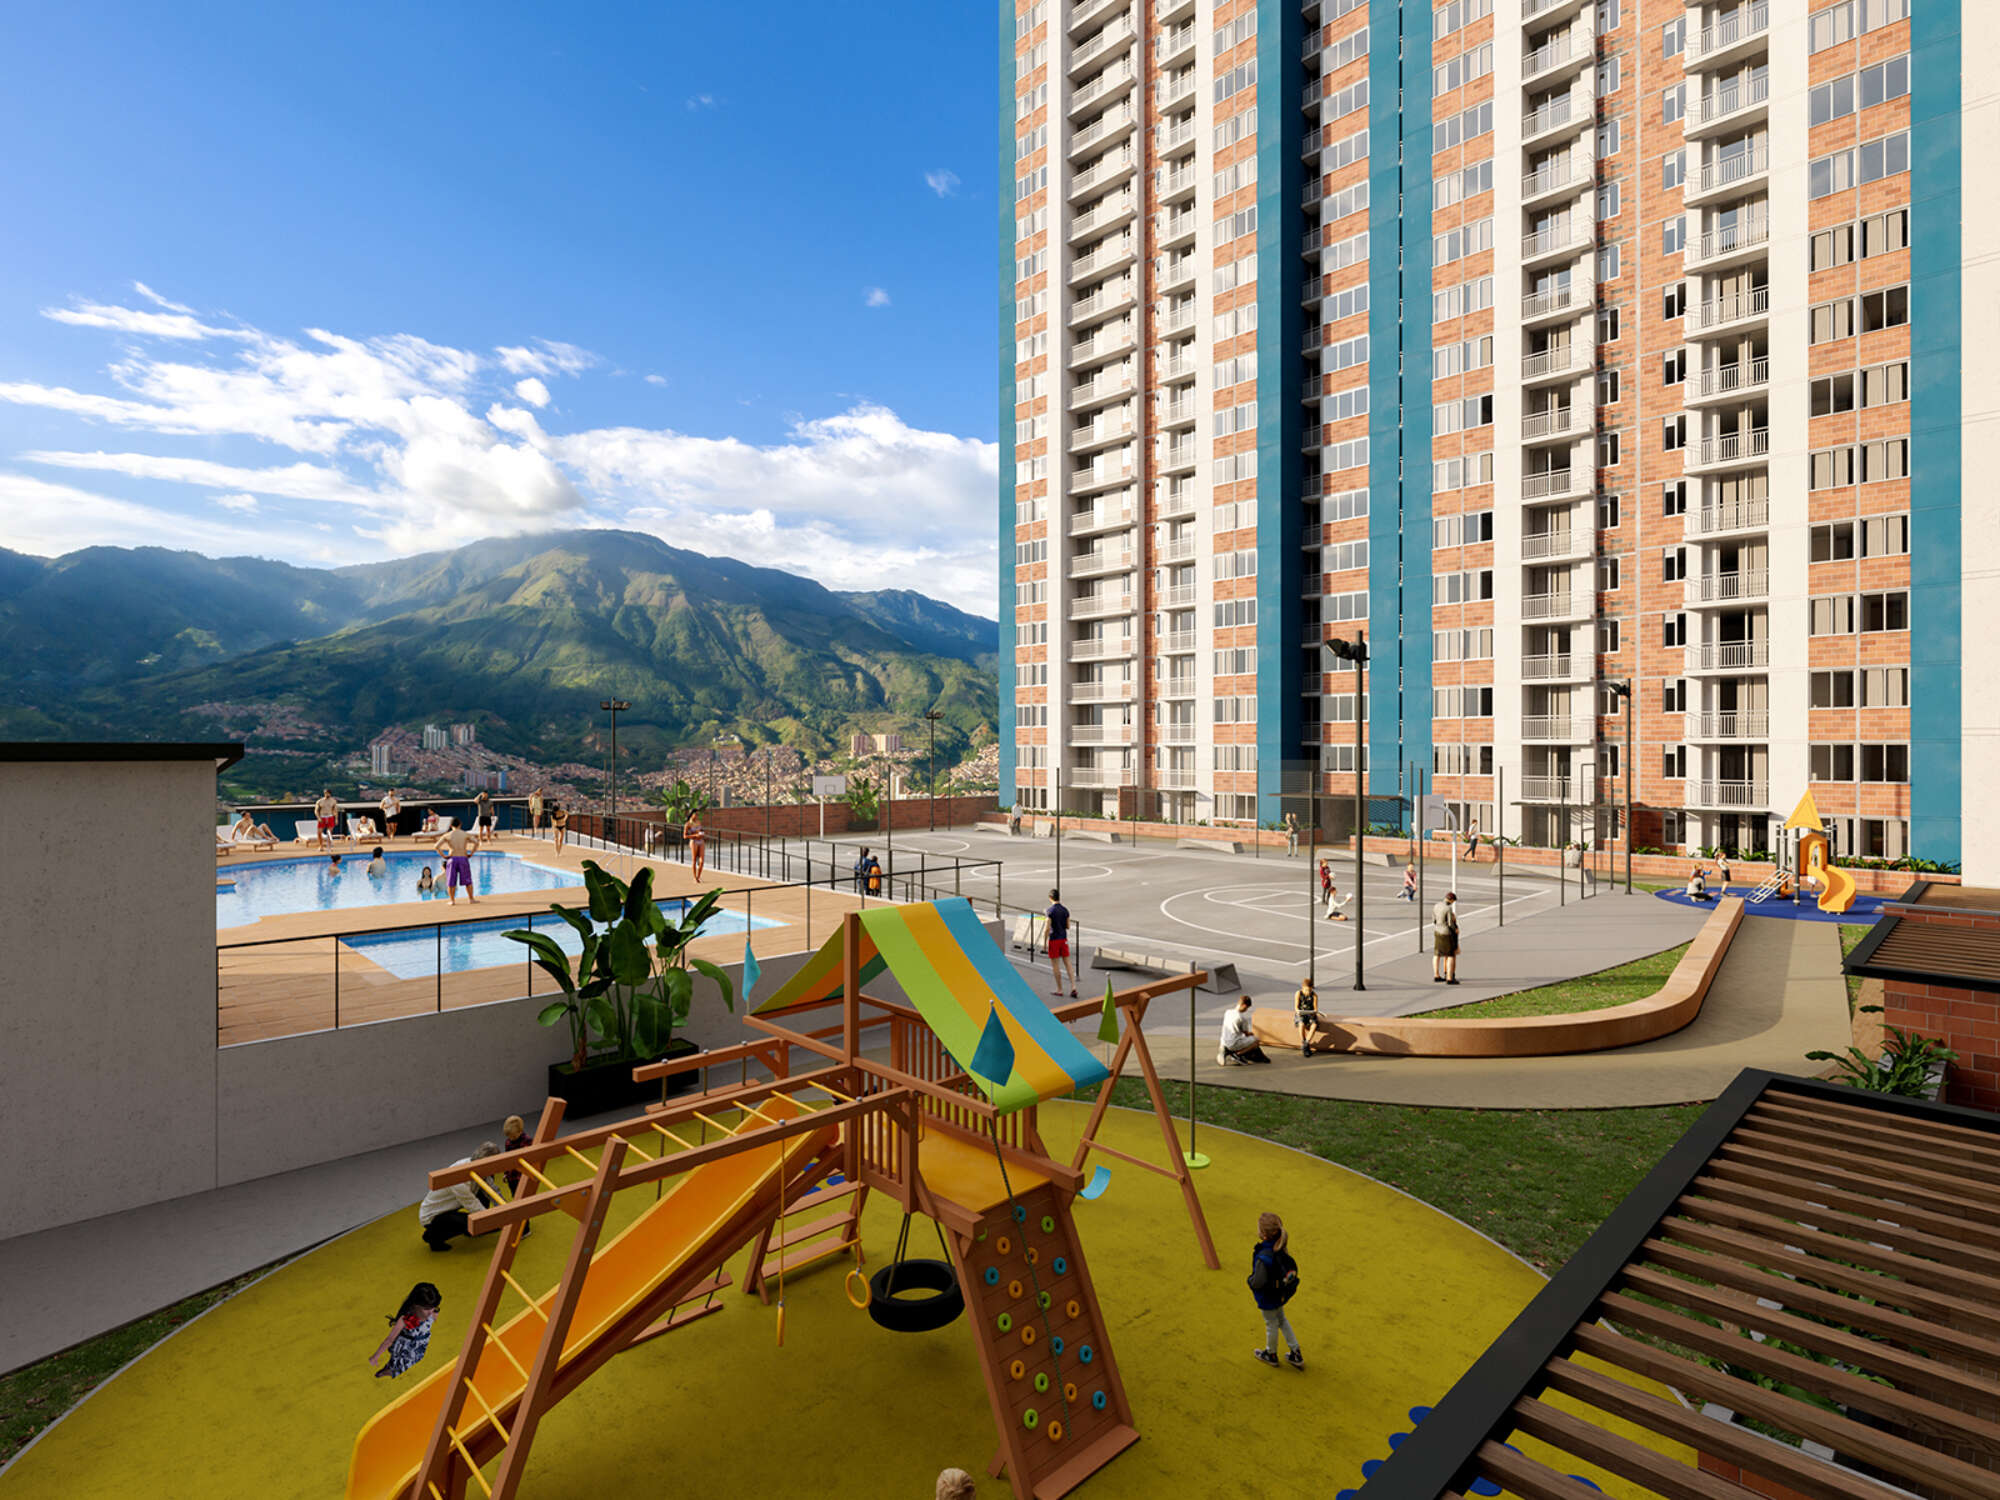 Rendering of apartment building with pool and playground in foreground and mountains and blue sky in background